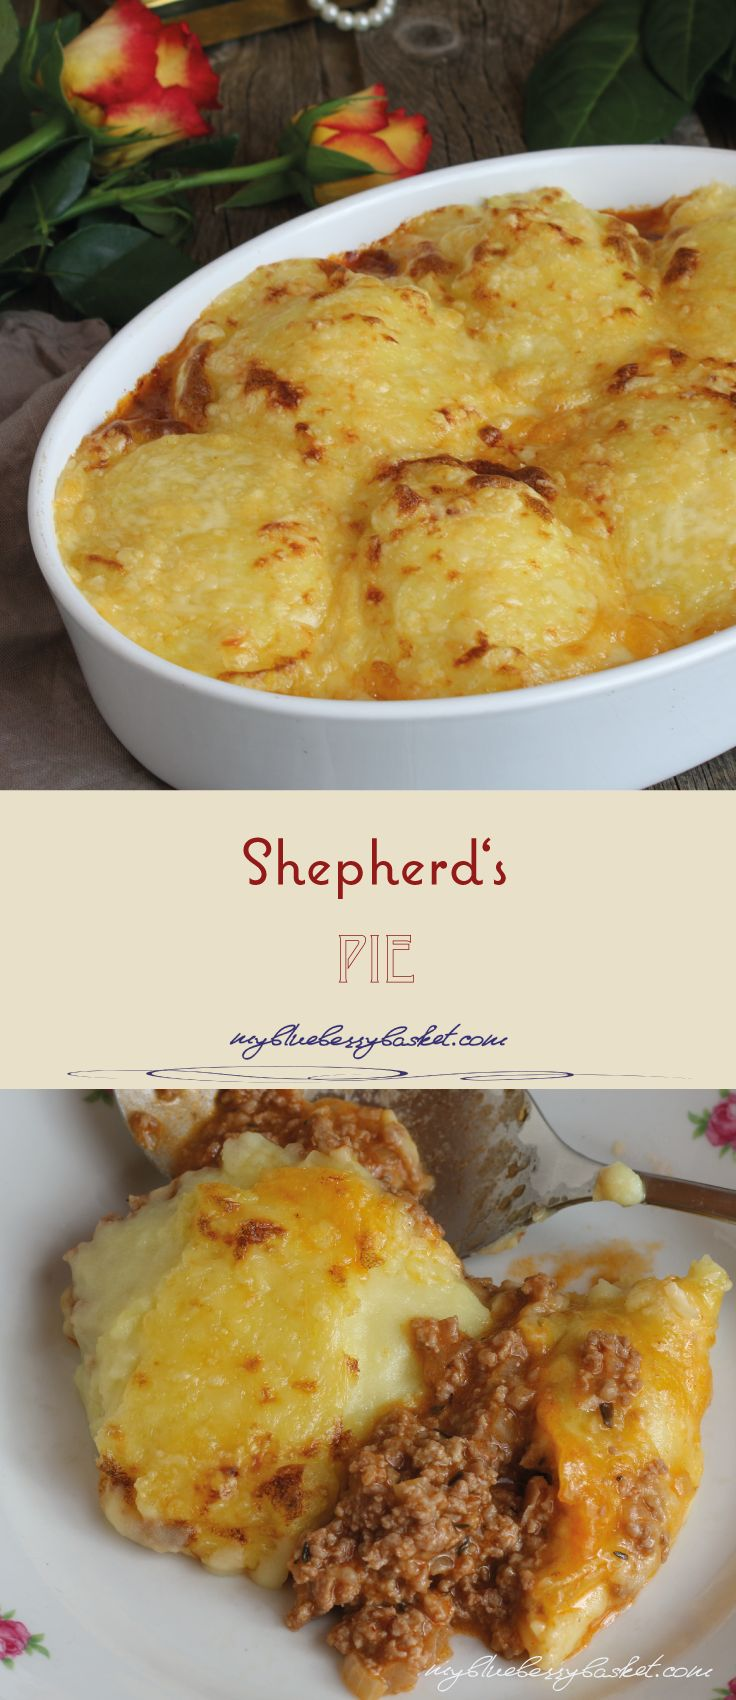 2778 best nigella lawson english cuisine images on pinterest shepherds pie traditional english foodtraditional english christmas dinnertraditional forumfinder Choice Image